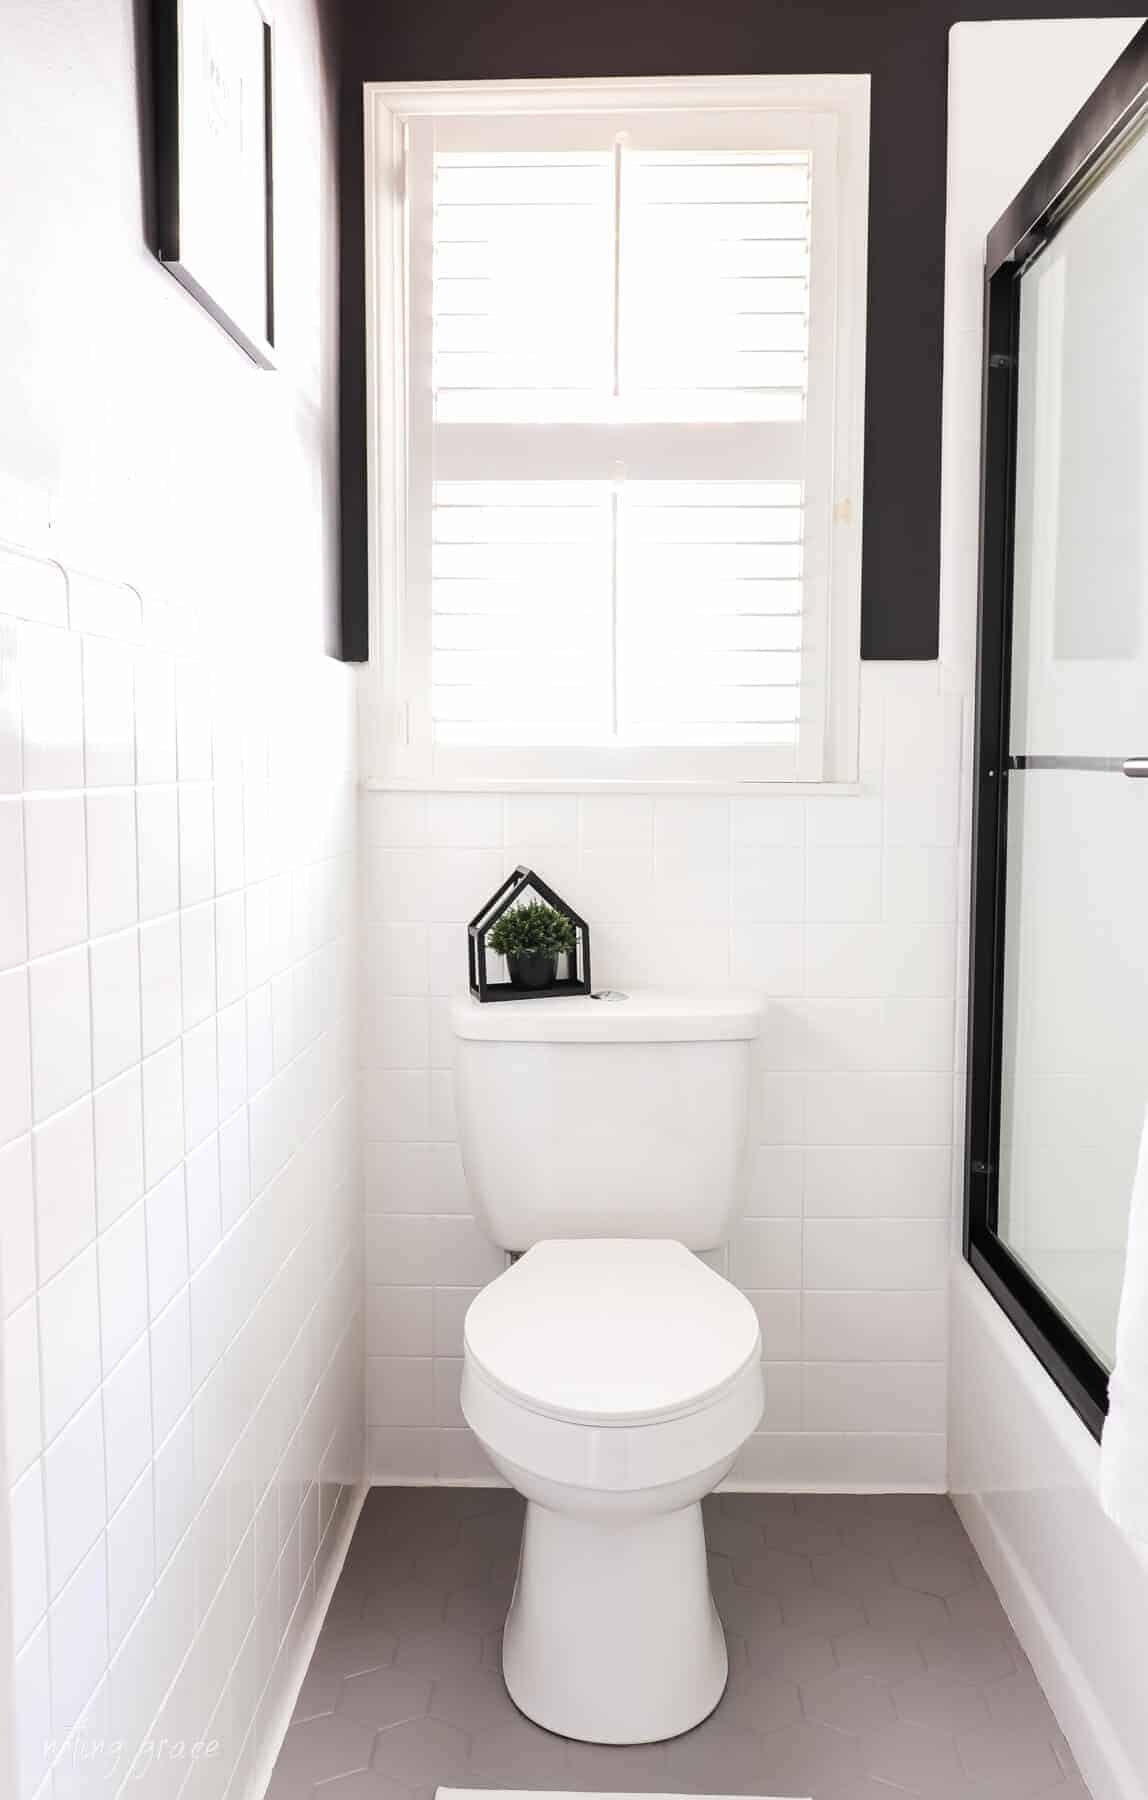 Changed bathrooms tiles for $150 bucks  with White painted wall tiles, gray painted hexagon bathroom flooring and white toilet with black painted walls